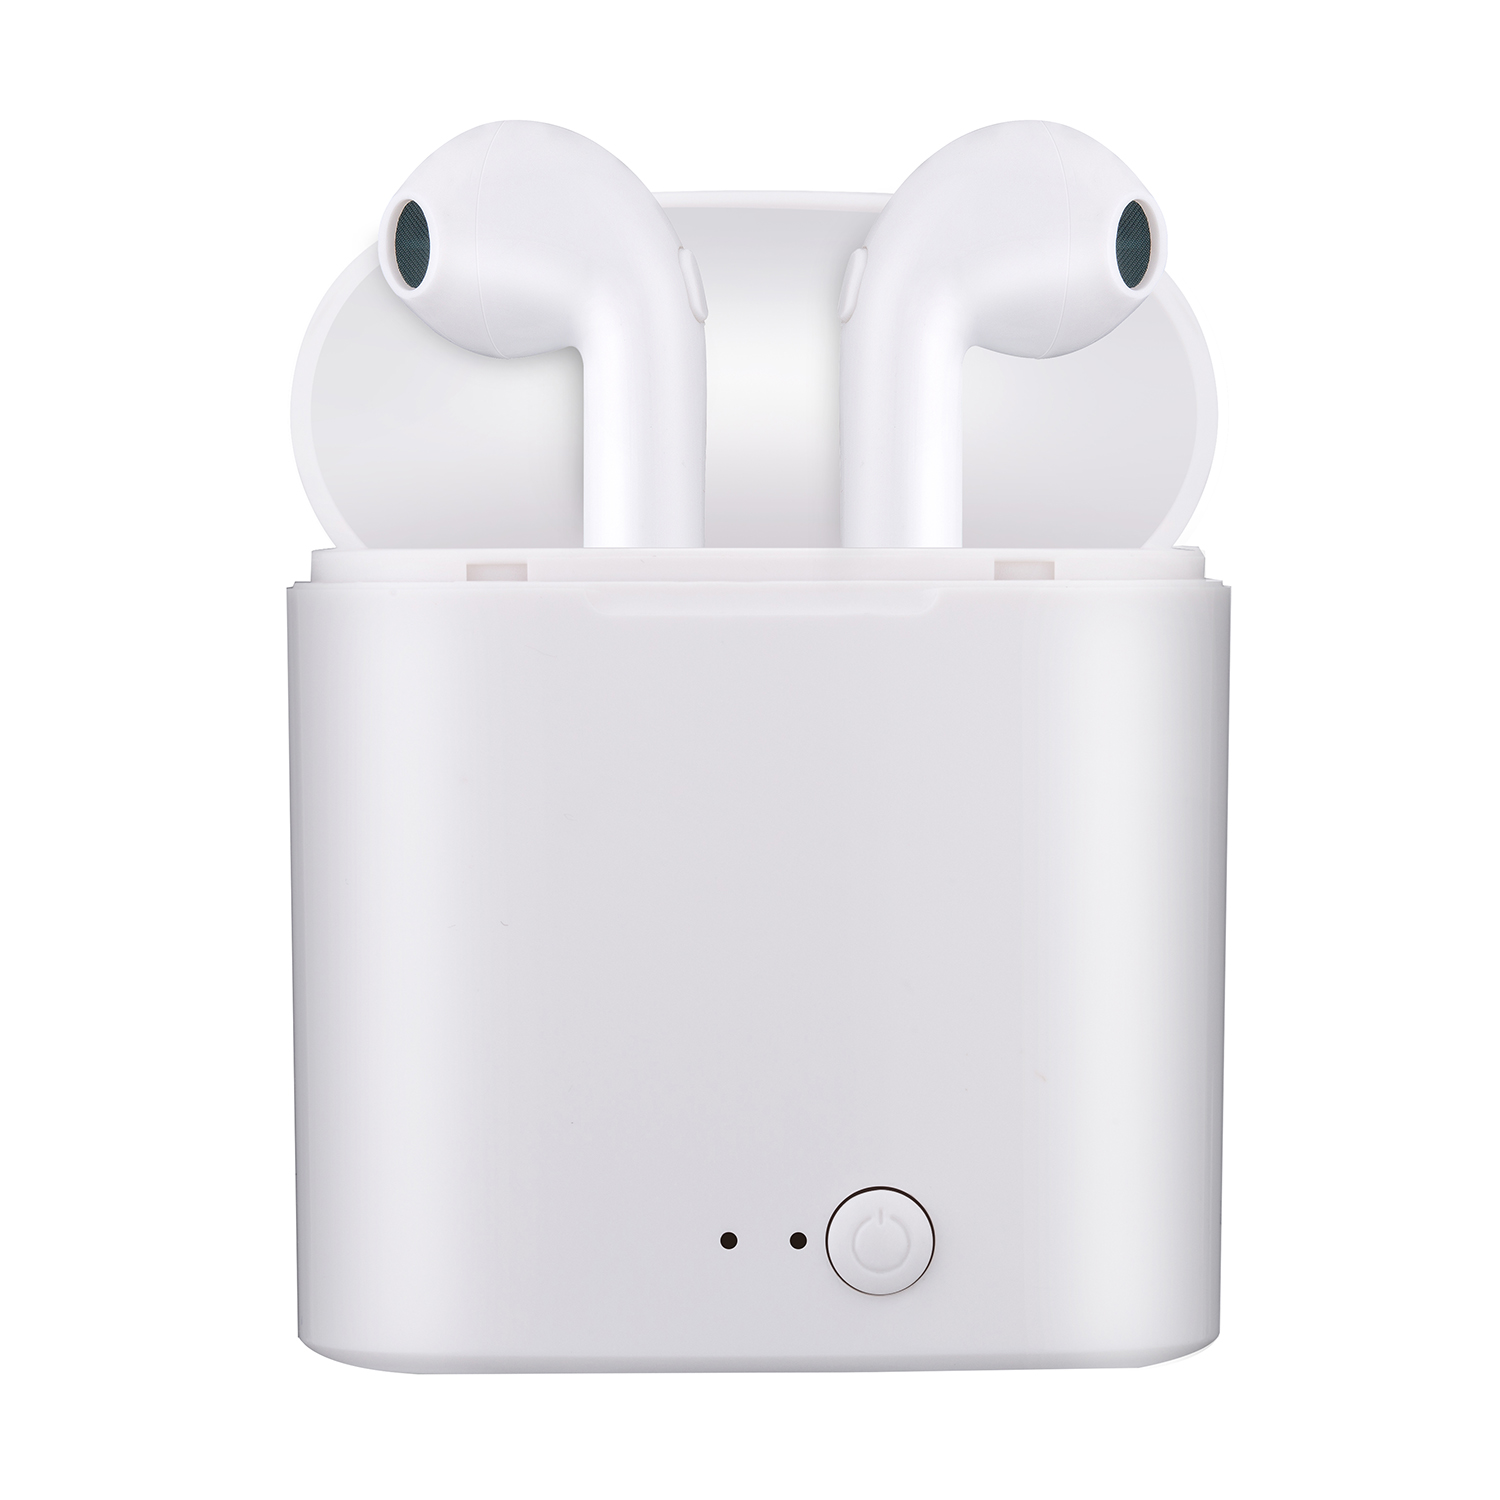 I7 I7S TWS Bluetooth Headphones Wireless Earbuds Portable Headset Phone Earphone Handsfree With Mic For IPhone X 8 7 6 Android